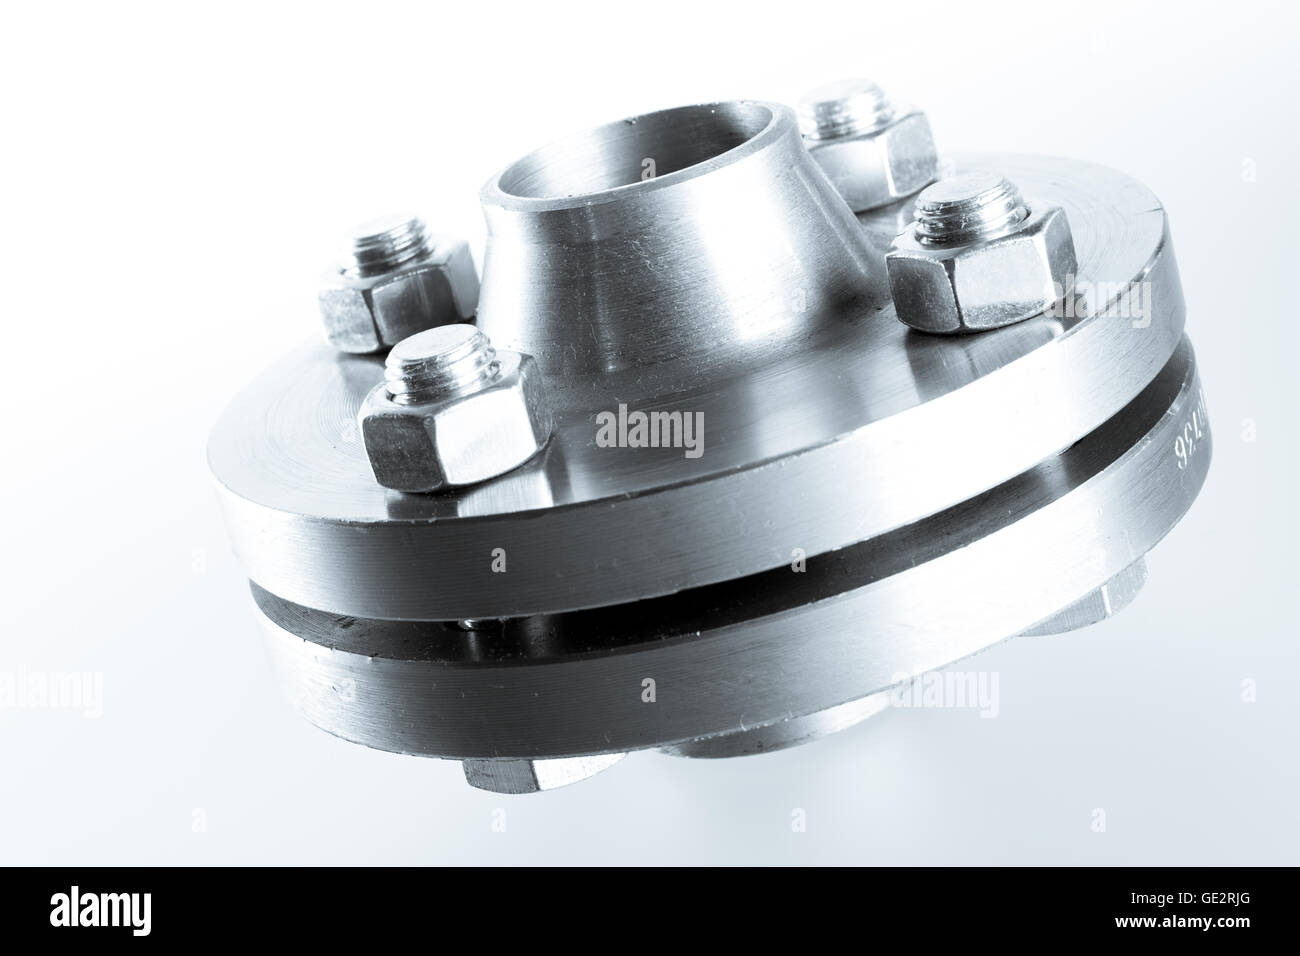 Two neck flanges connected together and bolted - isolated. - Stock Image